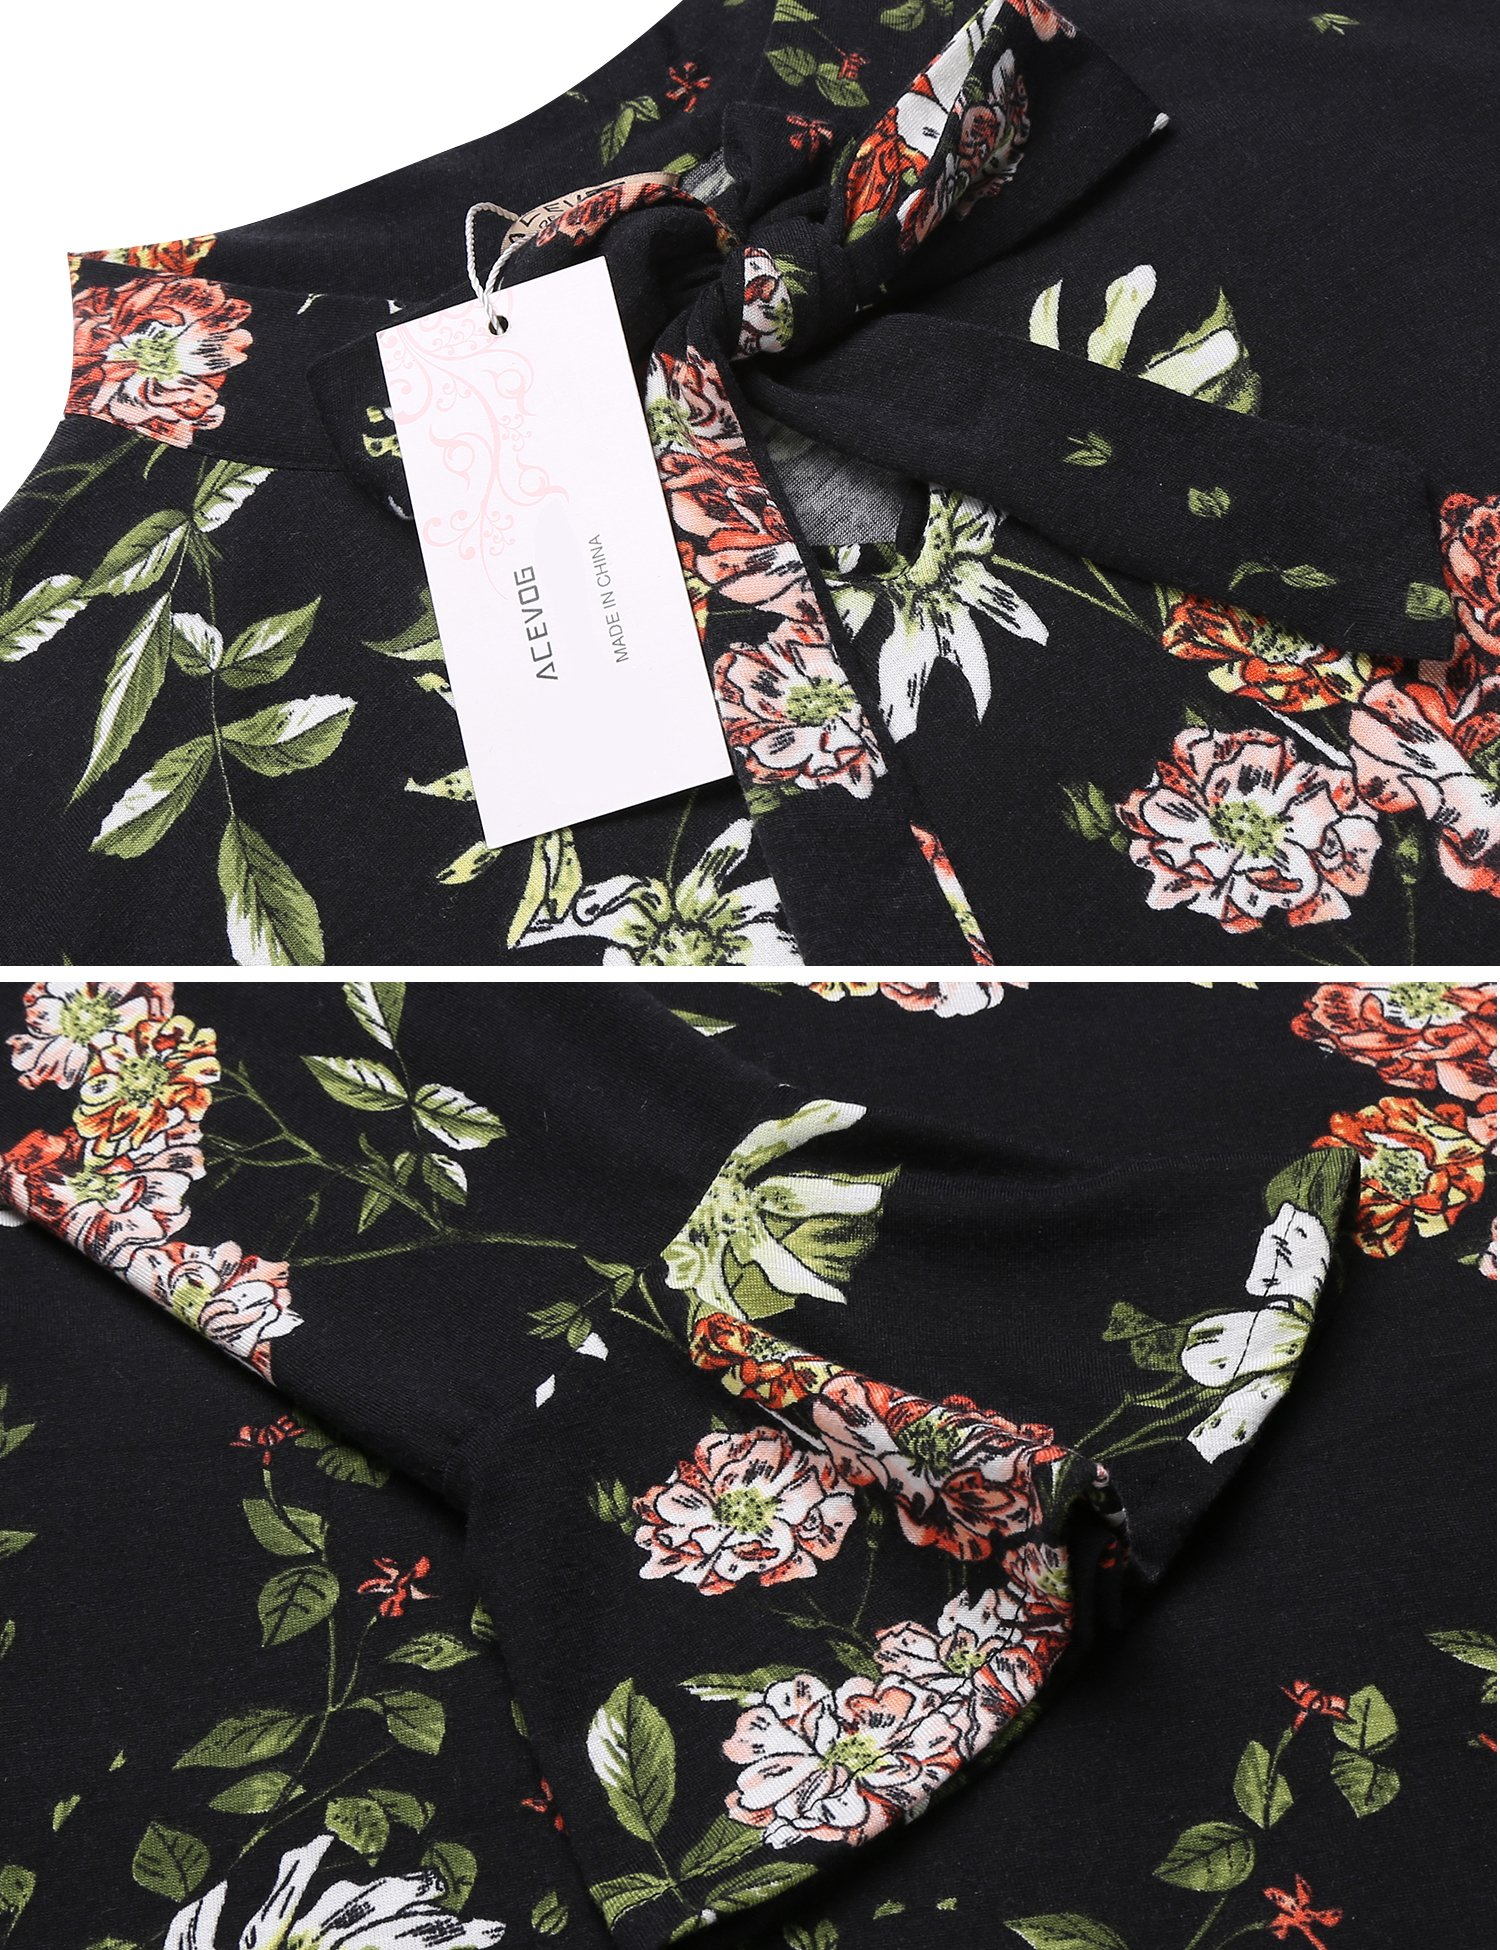 ACEVOG Women's Casual Floral Print Bell Sleeve Fit and Flare Dress (X-Large, Black) by ACEVOG (Image #6)